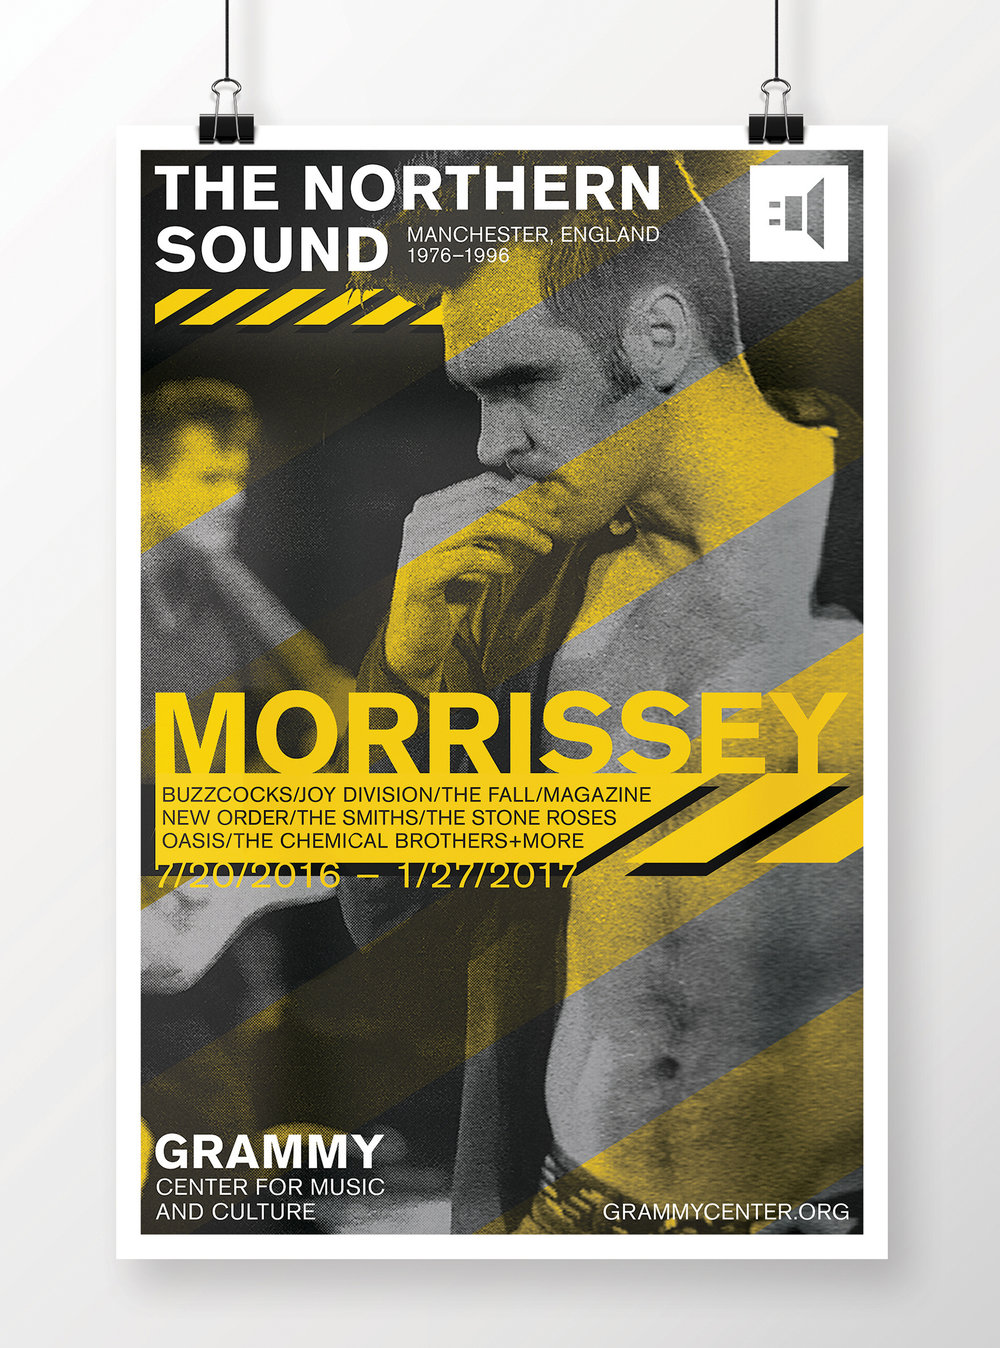 The former Smiths frontman's solo career took off instantly and he gained even more adoring fans. Morrissey has since become notable for his devoted latinx fanbase, specifically in Los Angeles.